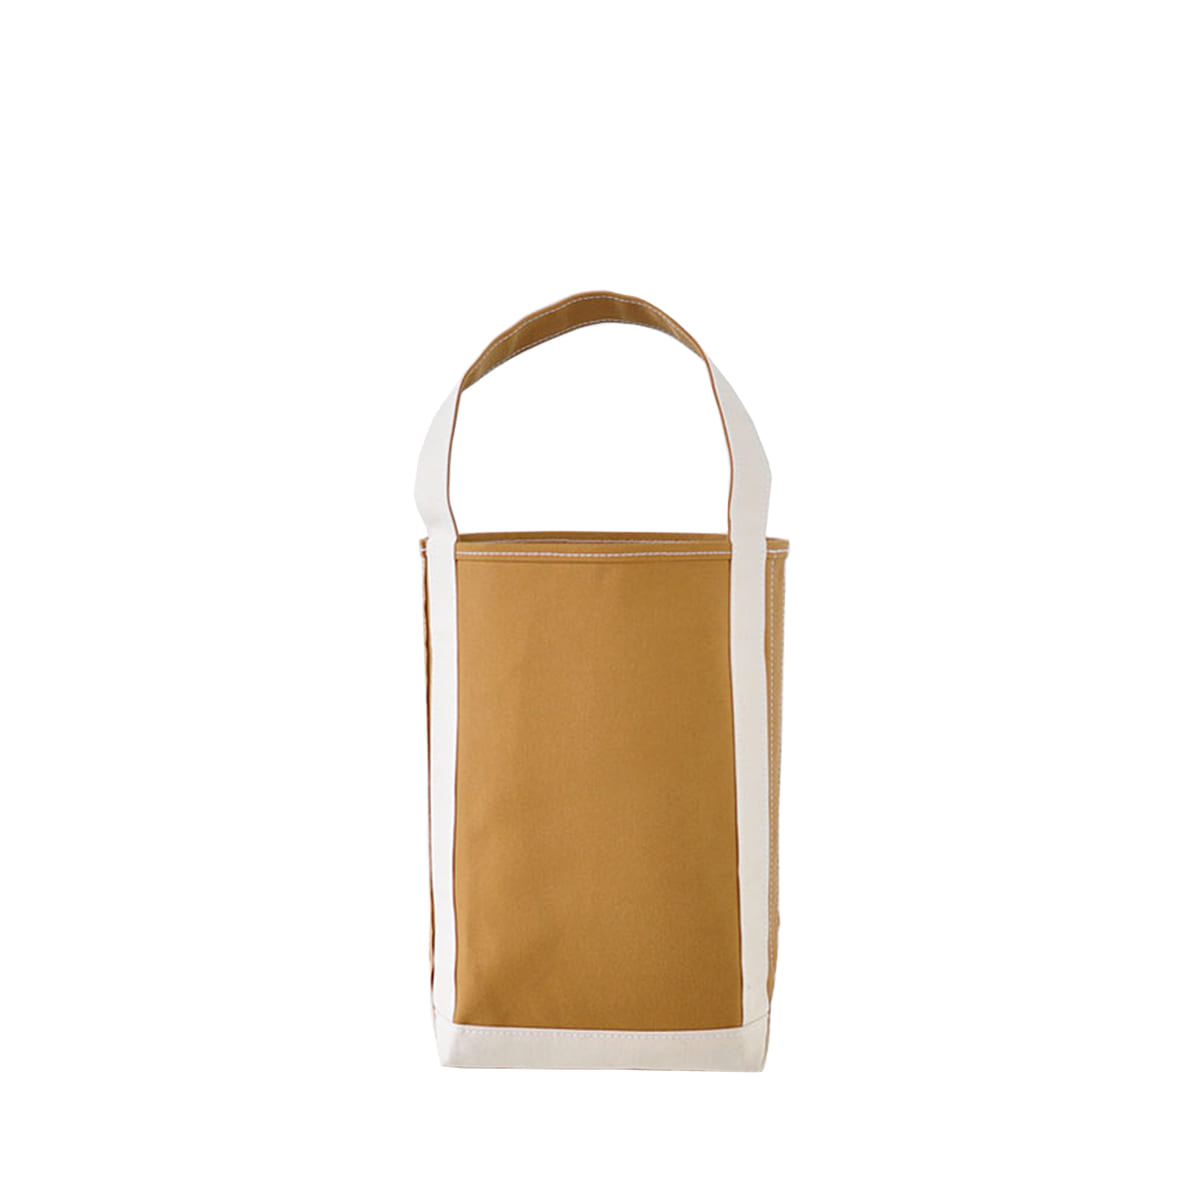 [TEMBEA] BAGUETTE TOTE SMALL 'BEIGE & NATURAL'